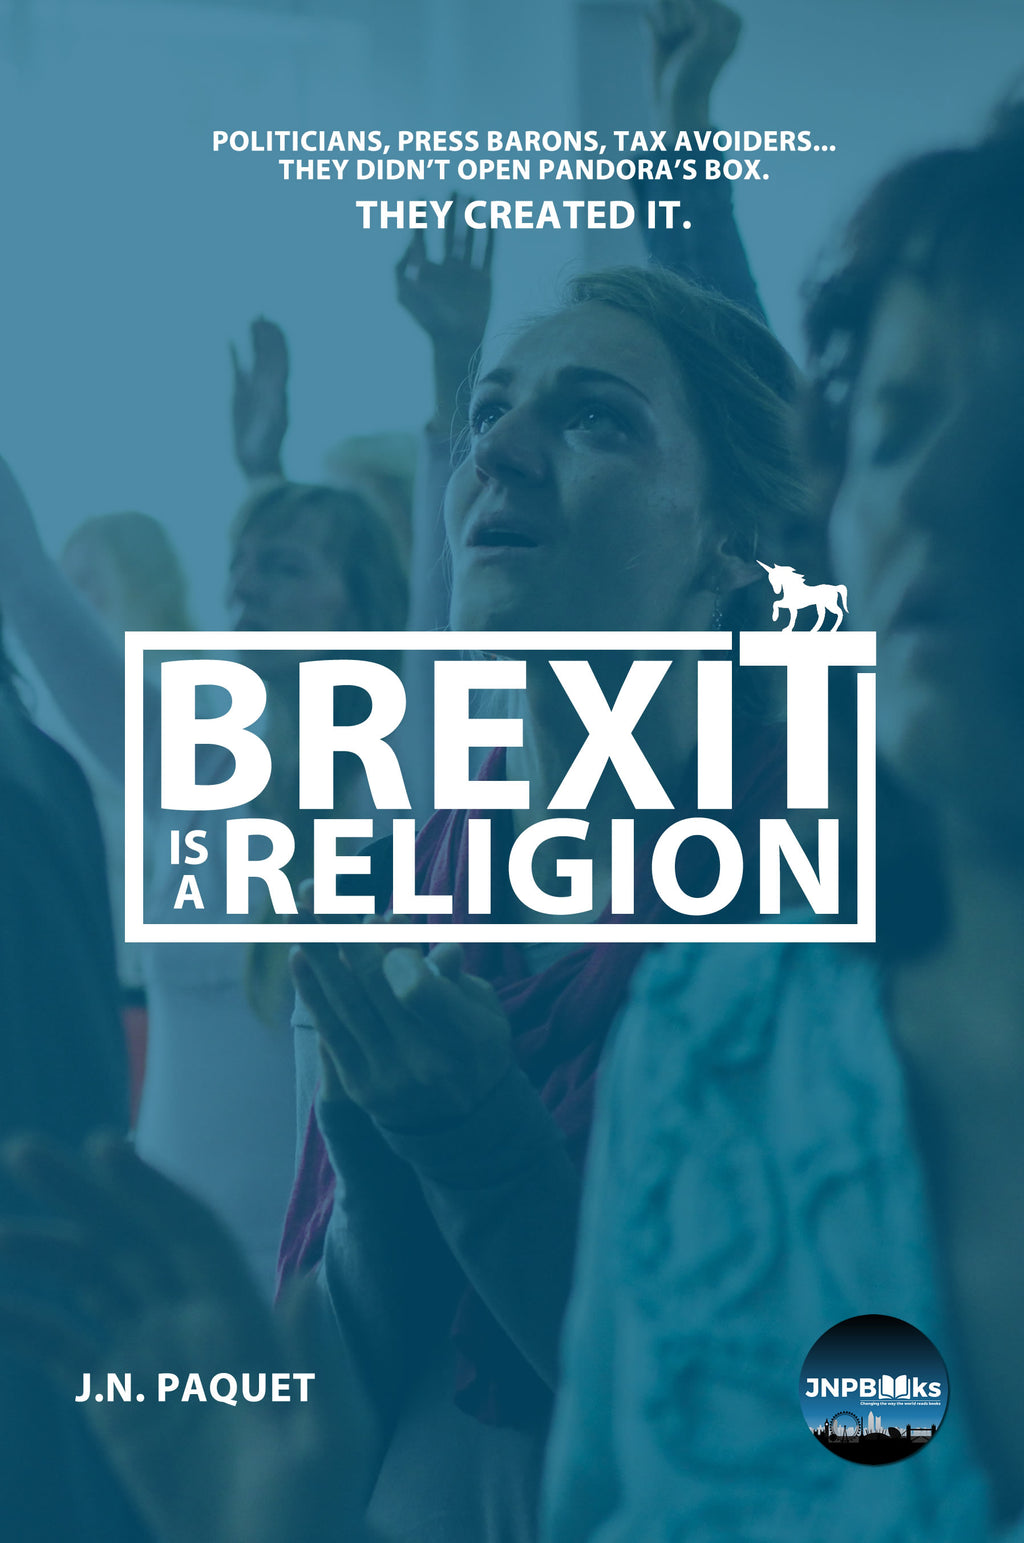 Brexit is a Religion